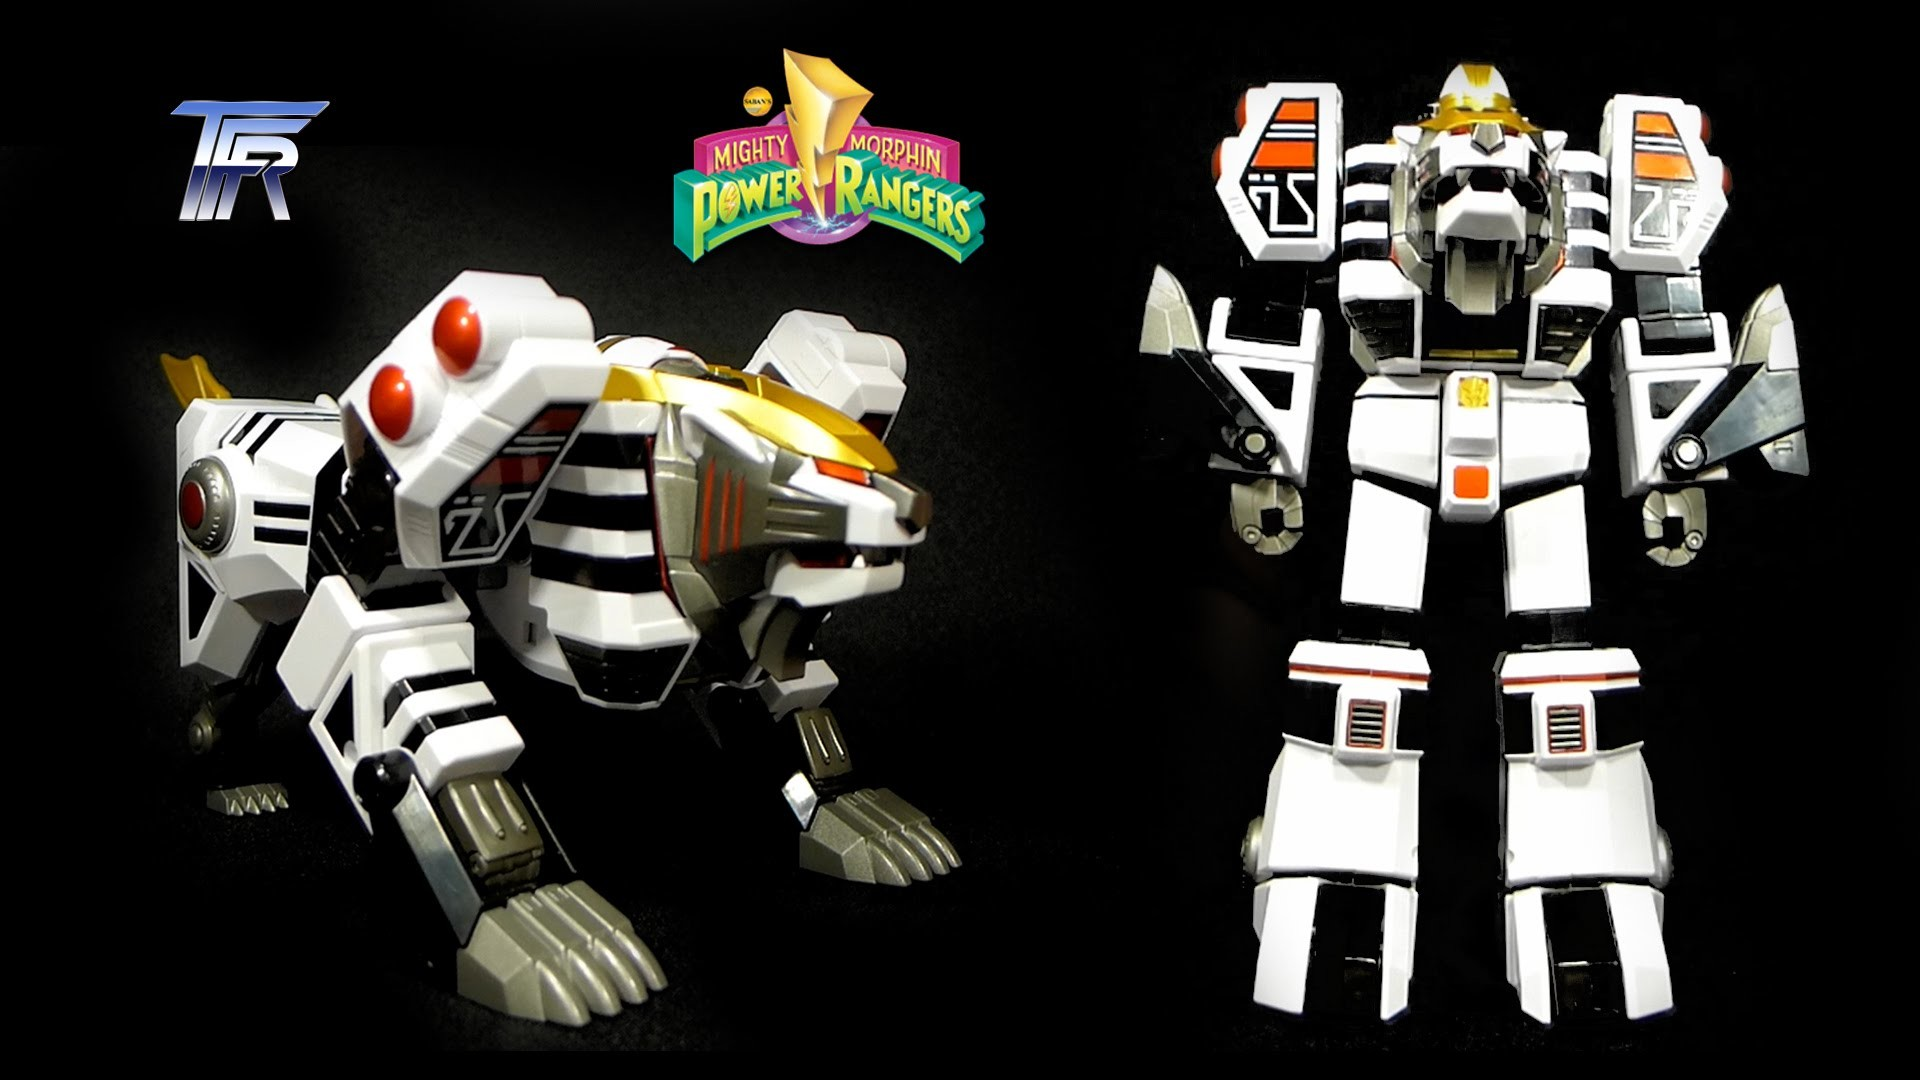 Mighty Morphin' Power Rangers LEGACY WHITE TIGERZORD (2015) Toy Review  (60FPS) – YouTube